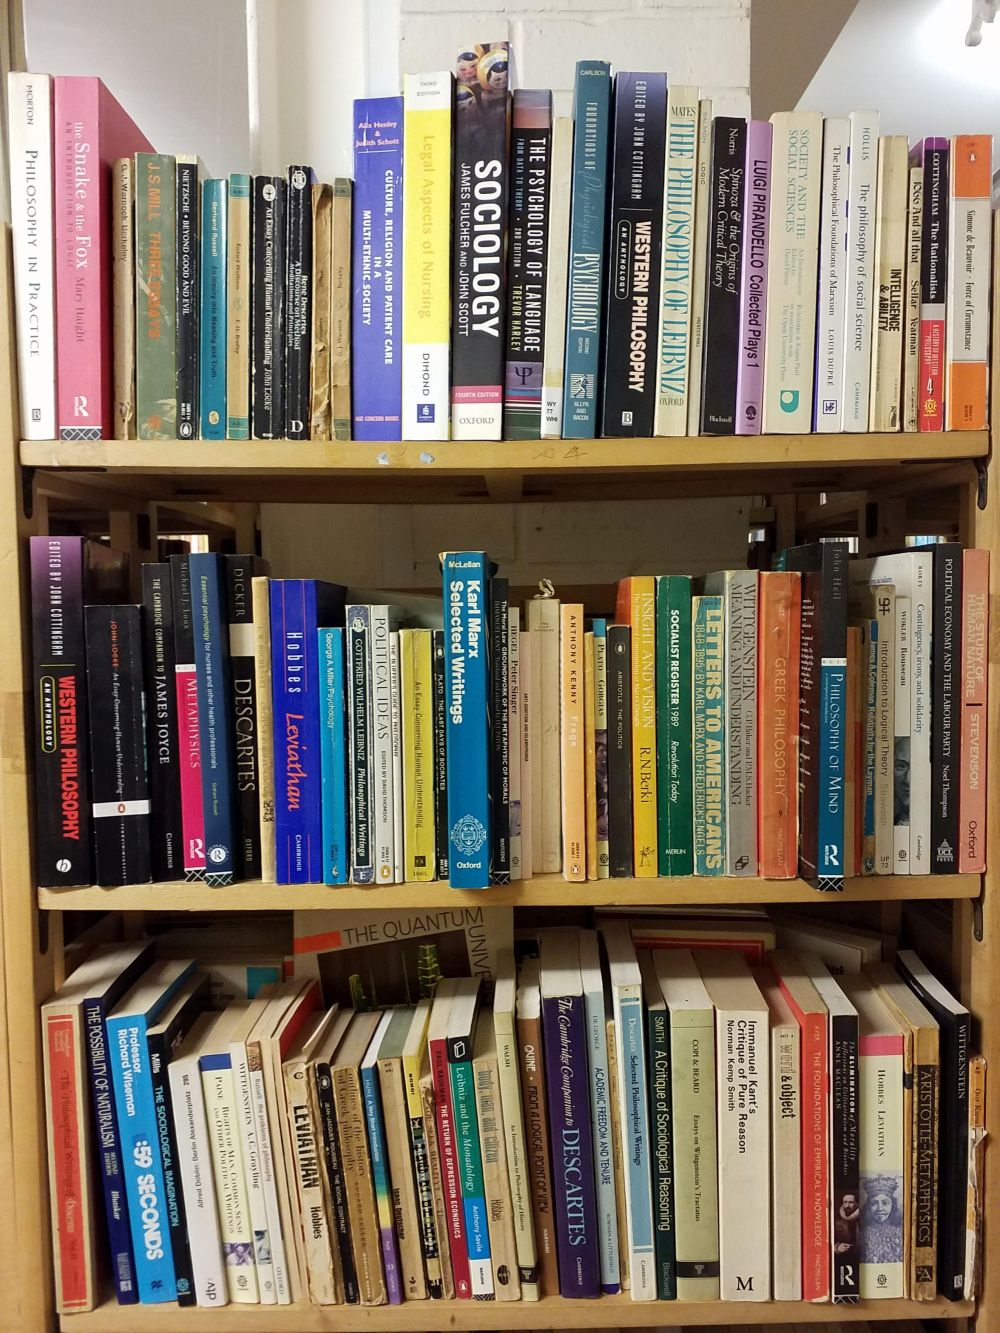 Philosophy. A large collection of early 20th-century & modern philosophy paperbacks